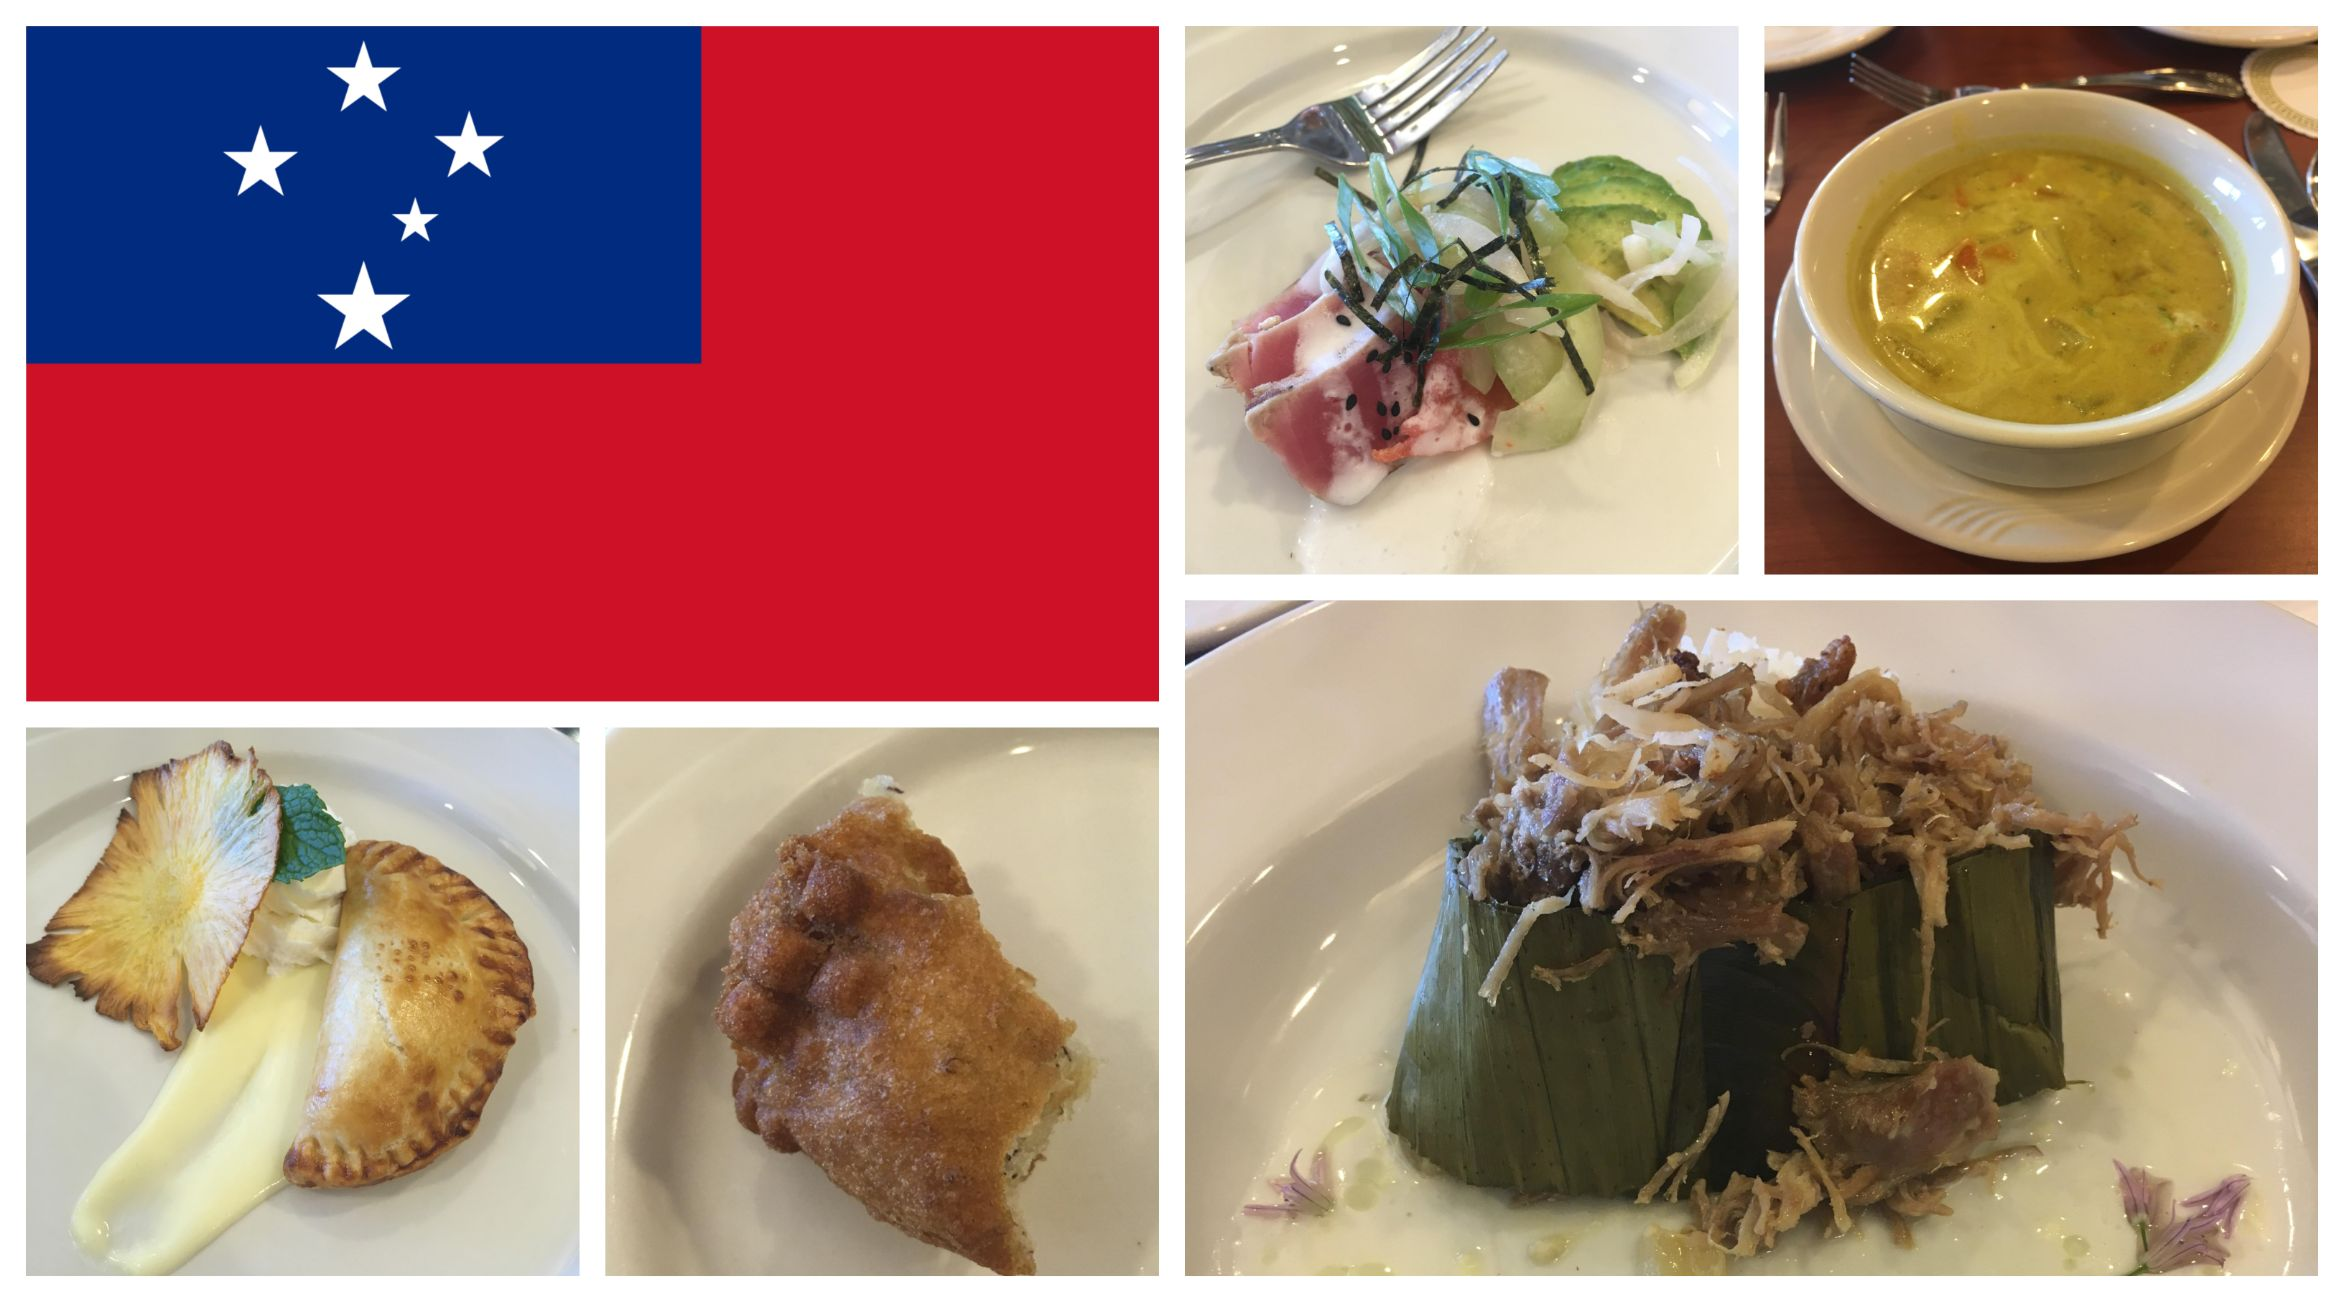 samao flag with samao dishes including soup, desert, pastries, and more